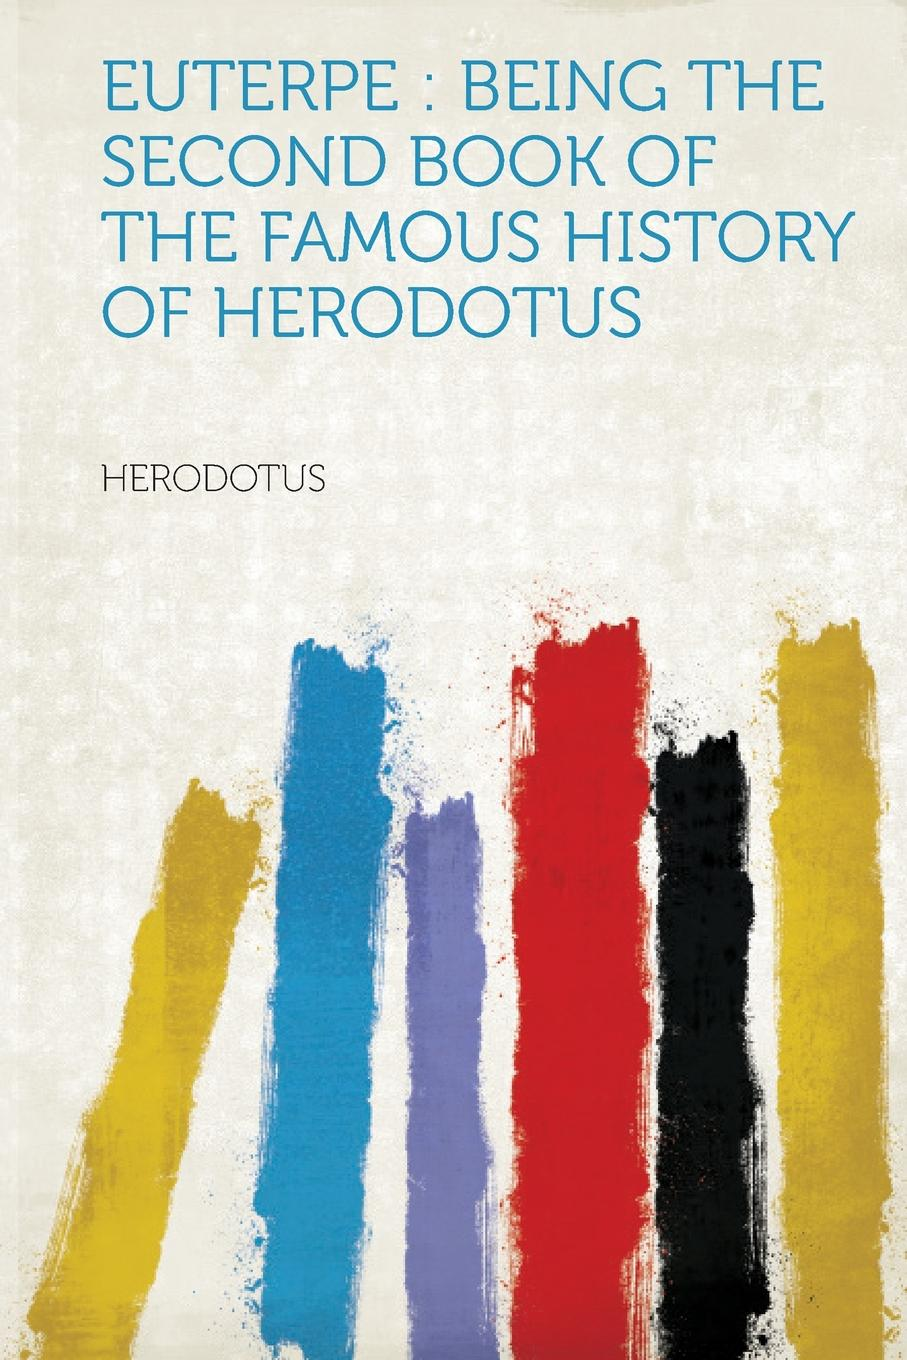 Euterpe. Being the Second Book of the Famous History of Herodotus